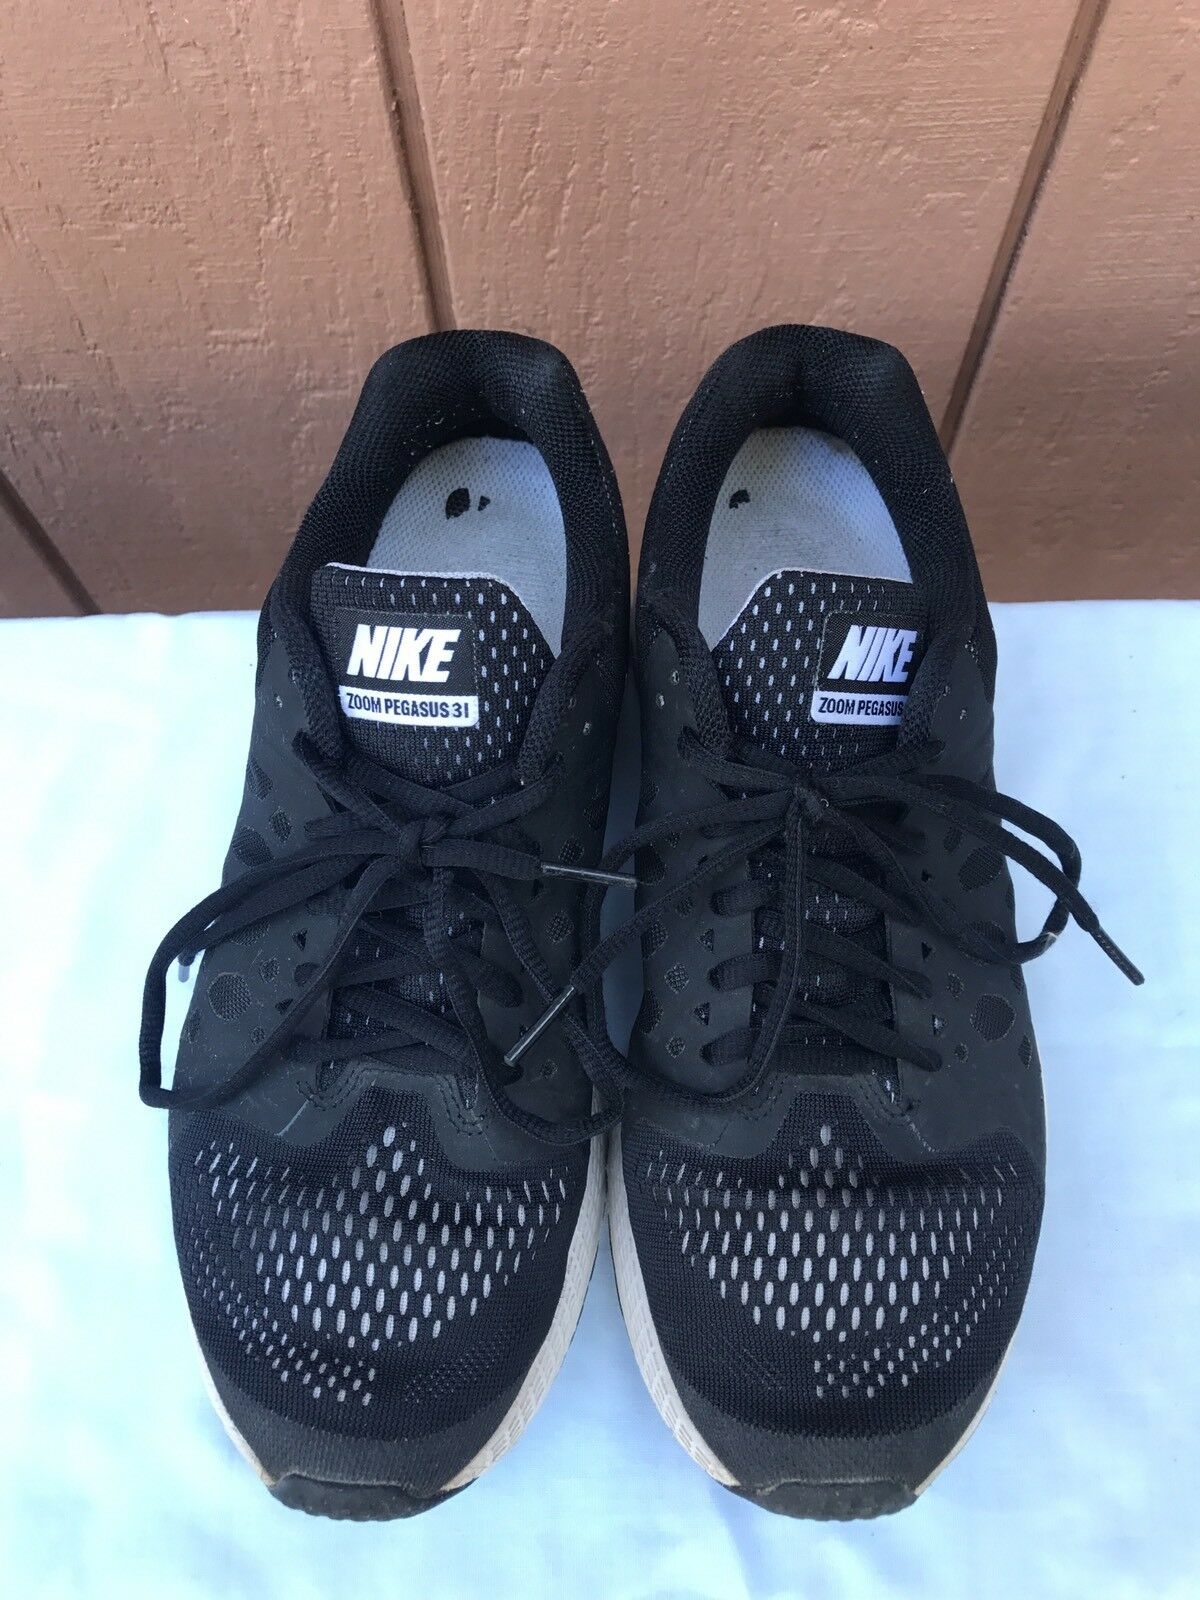 competitive price 4c9a6 0d9fb ... spain nike air zoom pegasus 31 womens us 9.5 654486 010 running shoe  black white 654486